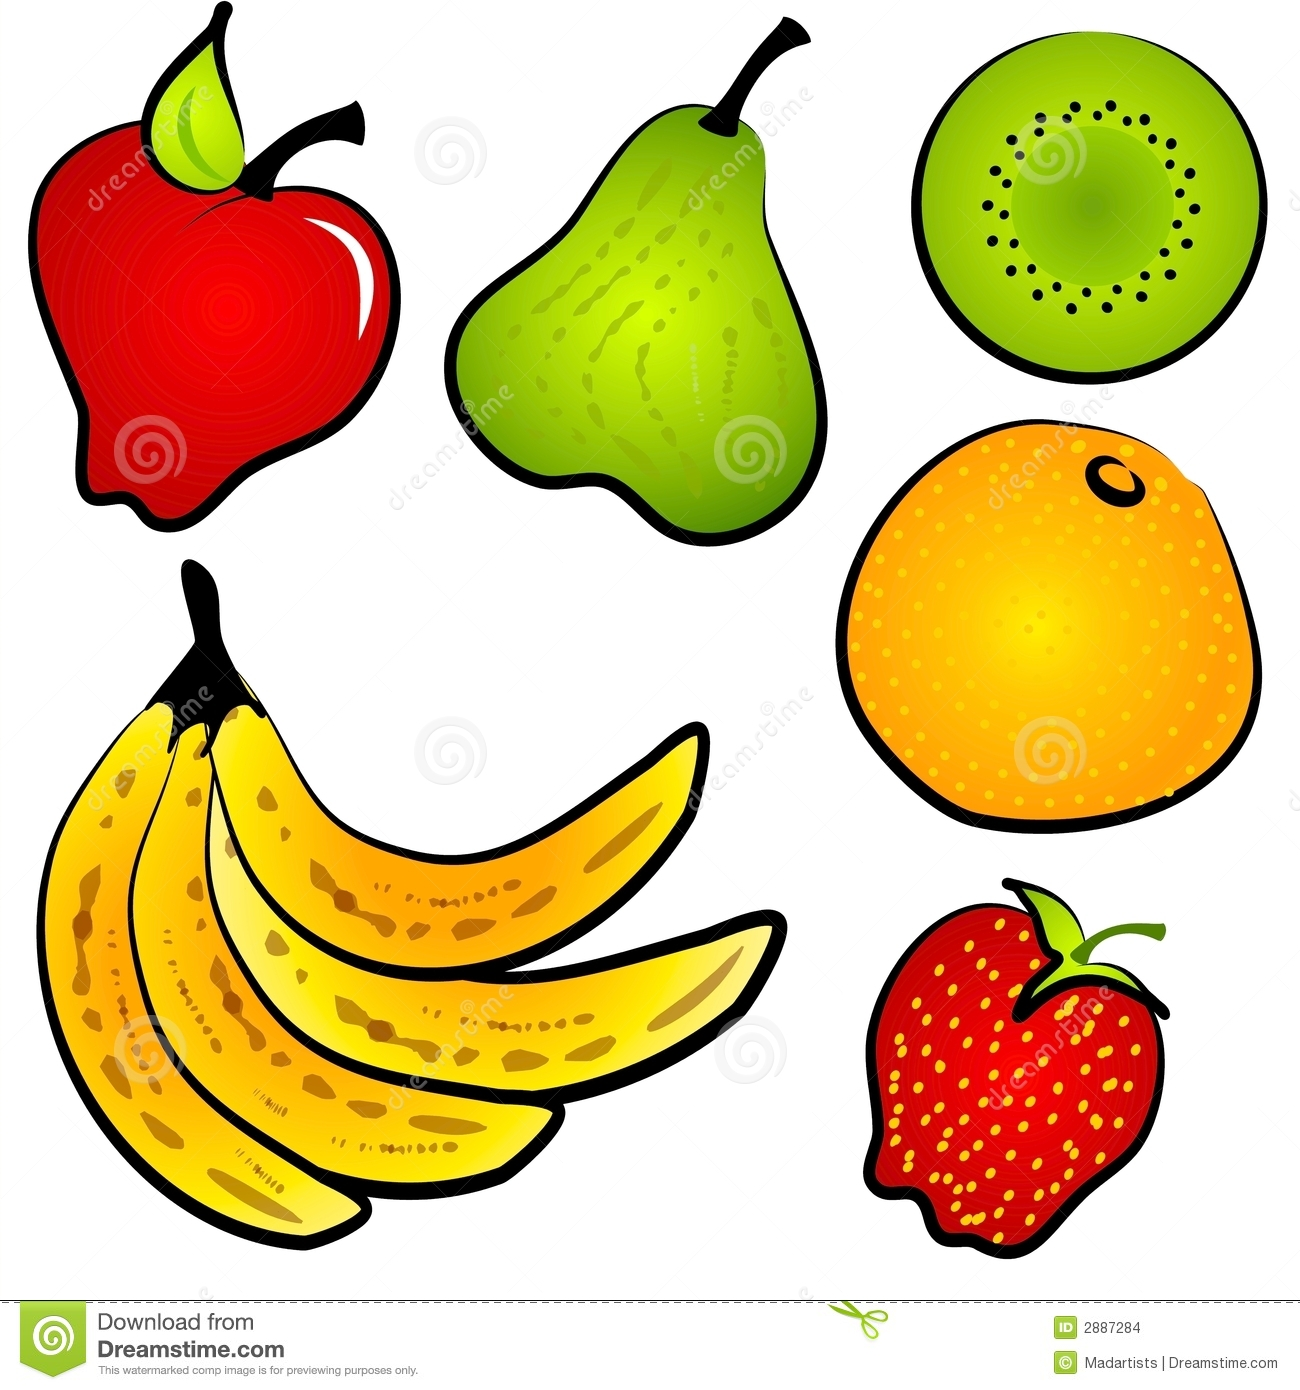 Clip Art Collection Of Health - Food Images Clip Art